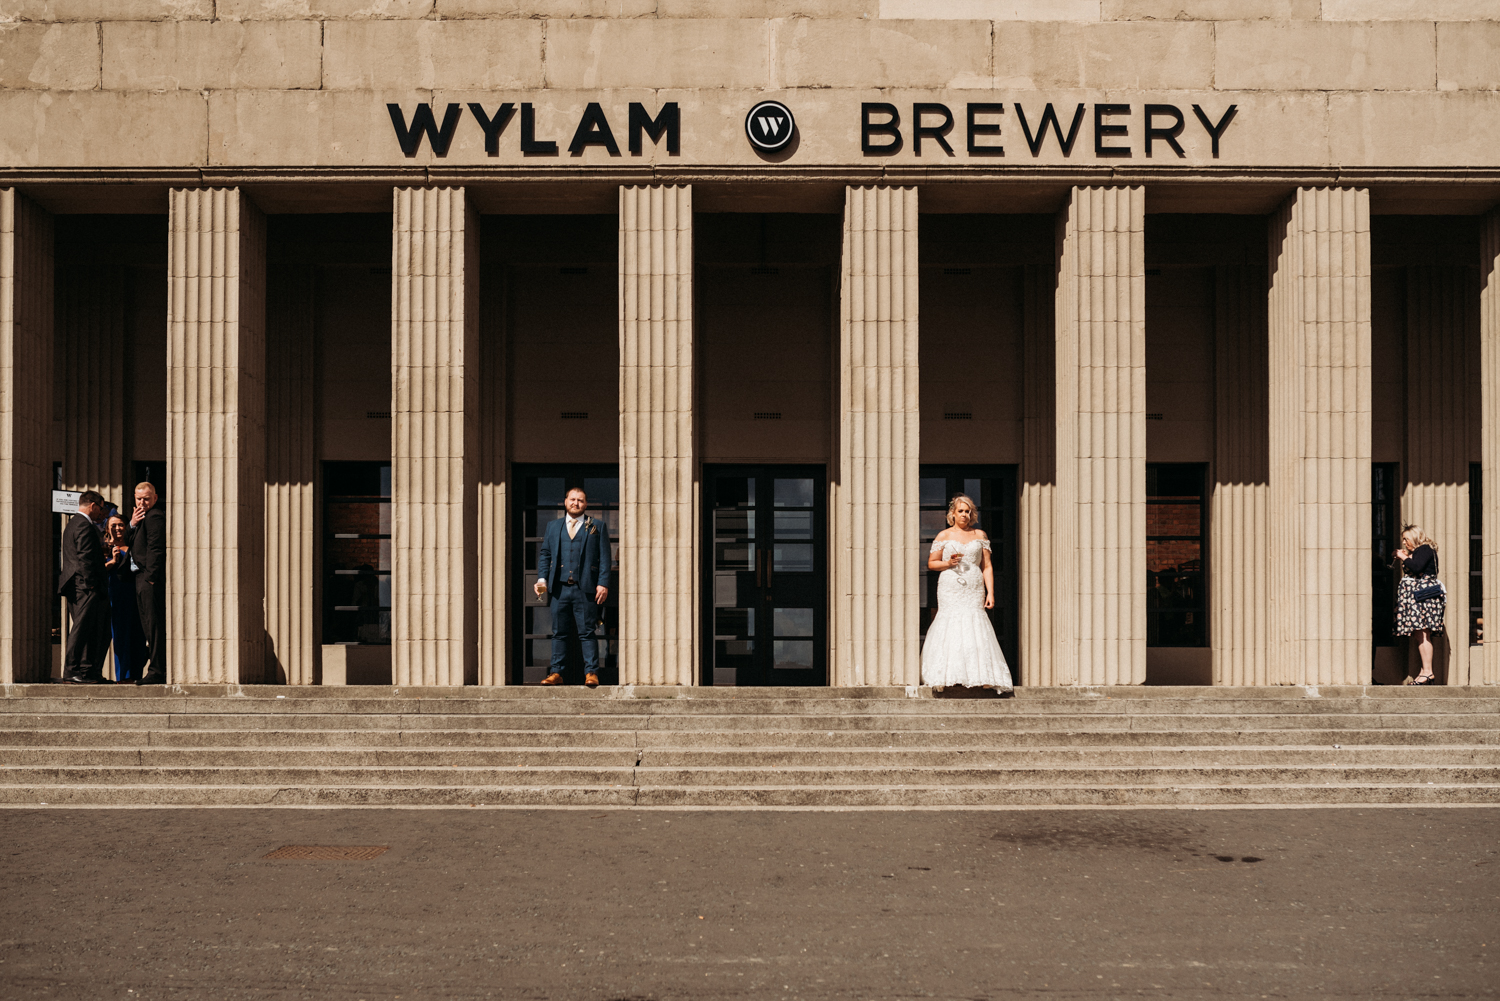 bride and groom stand in front of brewery at Wylam Brewery Wedding